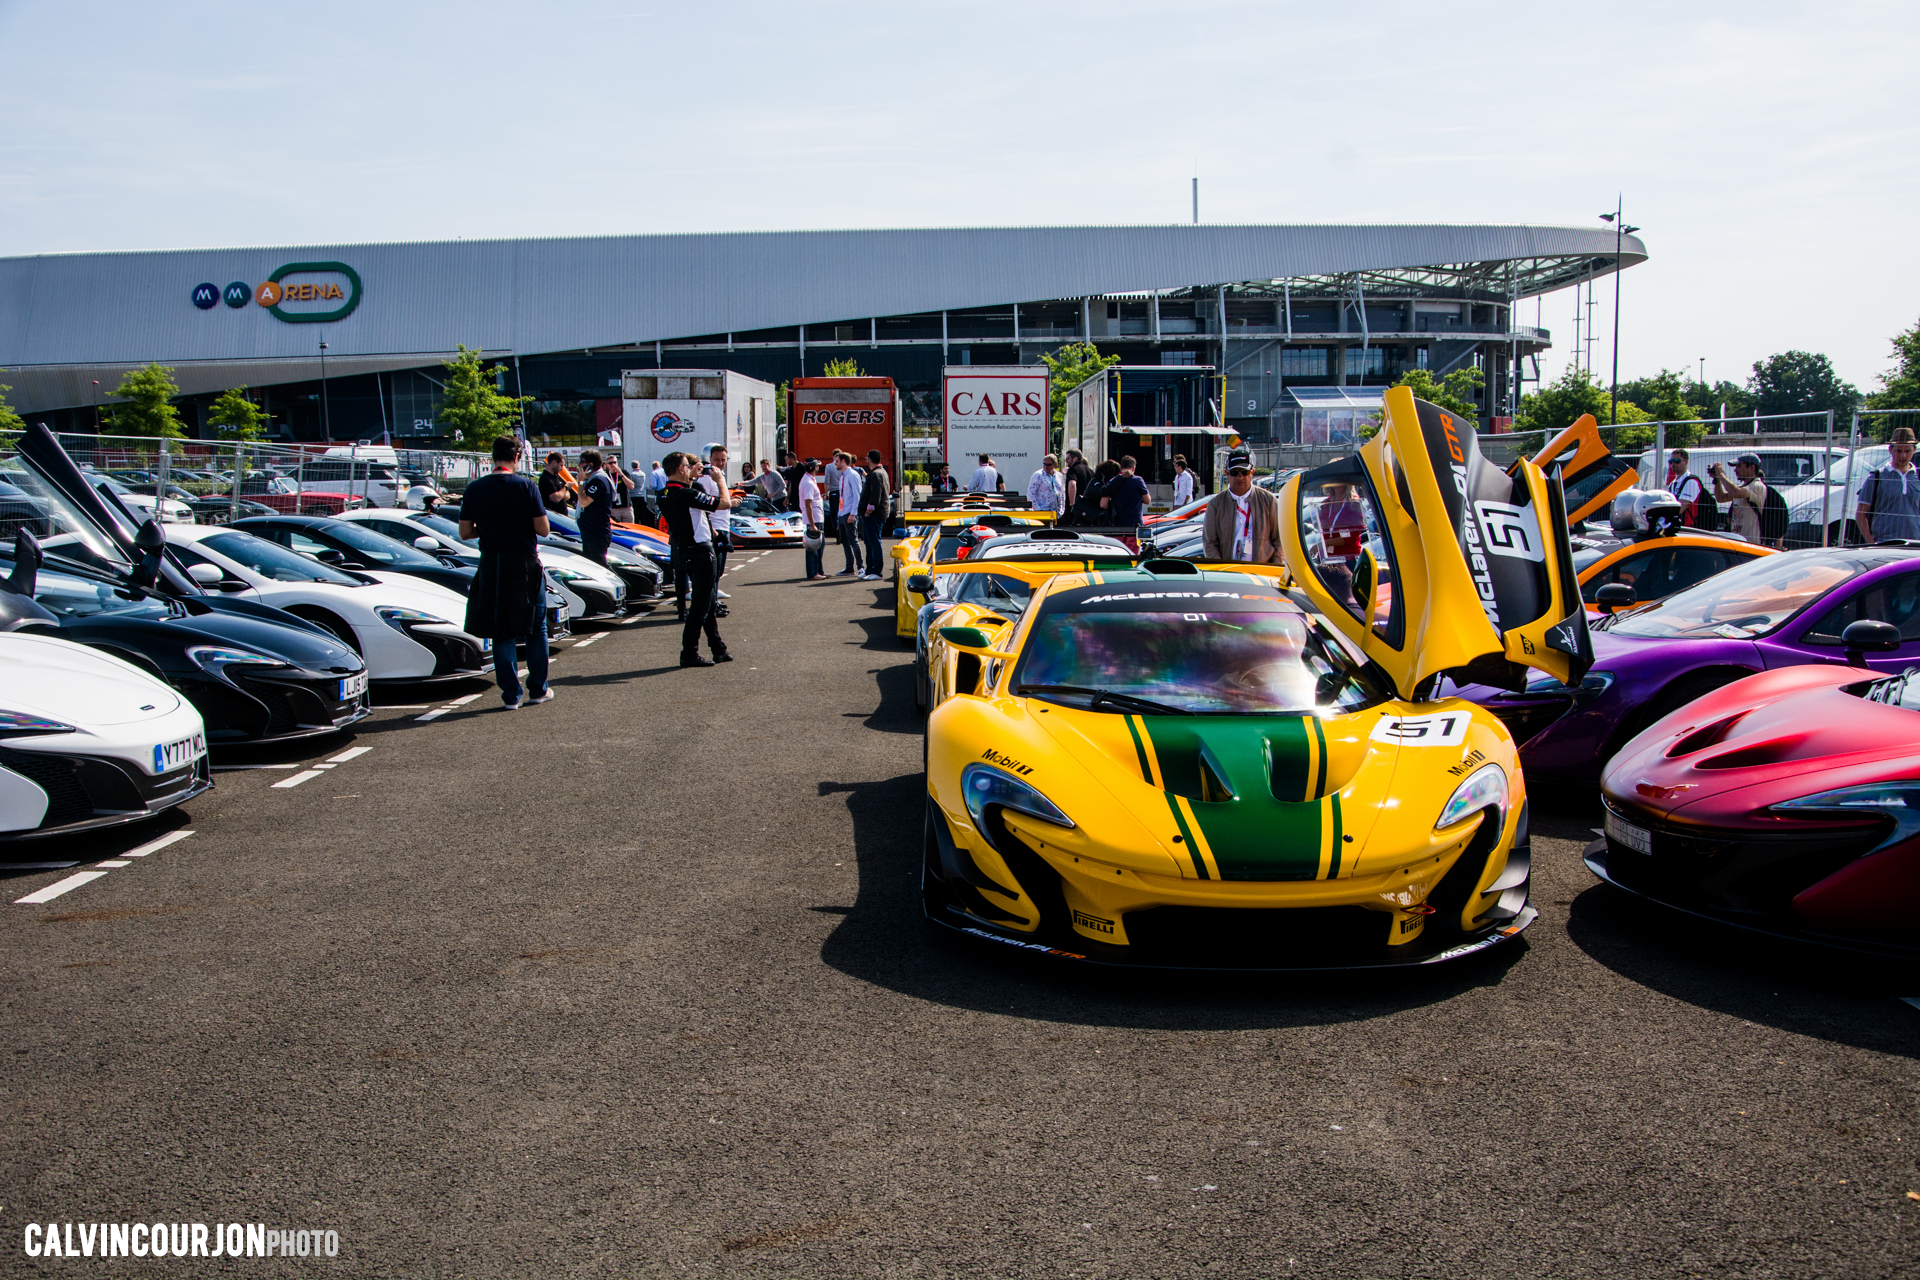 McLaren95 parade at Le Mans - 2015 - photo Calvin Courjon